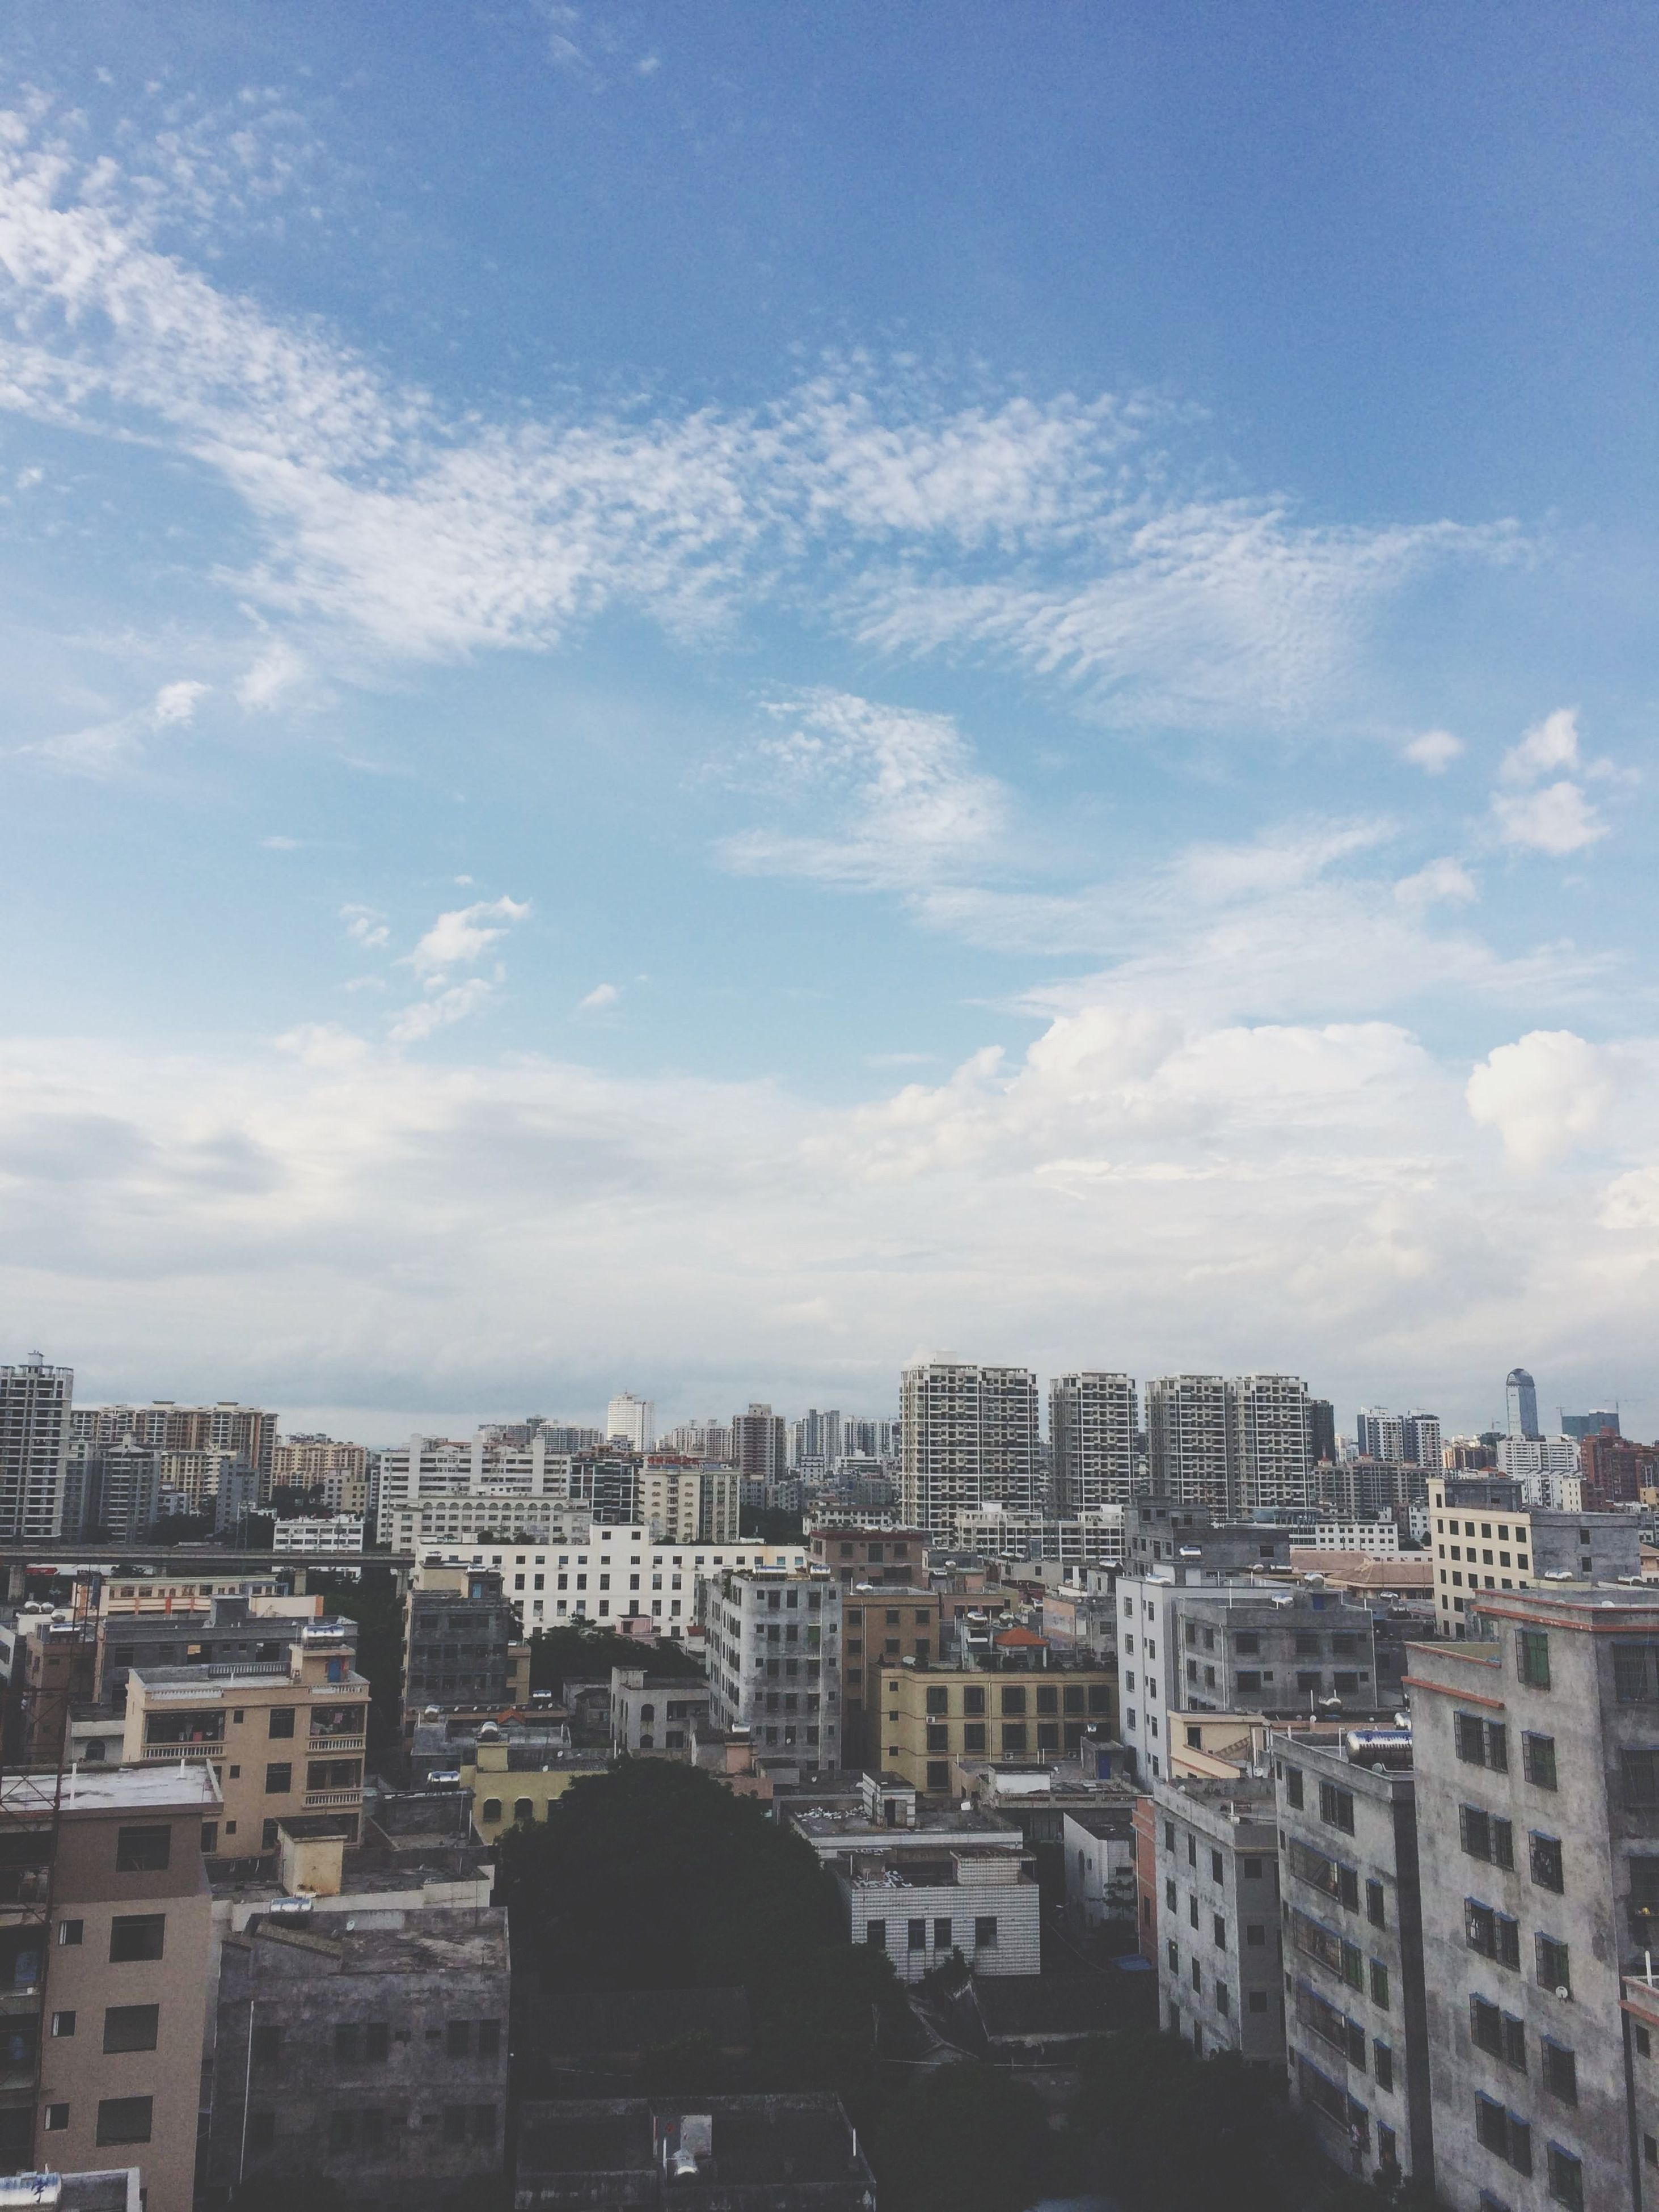 building exterior, architecture, built structure, city, cityscape, sky, residential district, crowded, residential building, residential structure, cloud - sky, high angle view, cloud, blue, day, outdoors, no people, city life, house, building